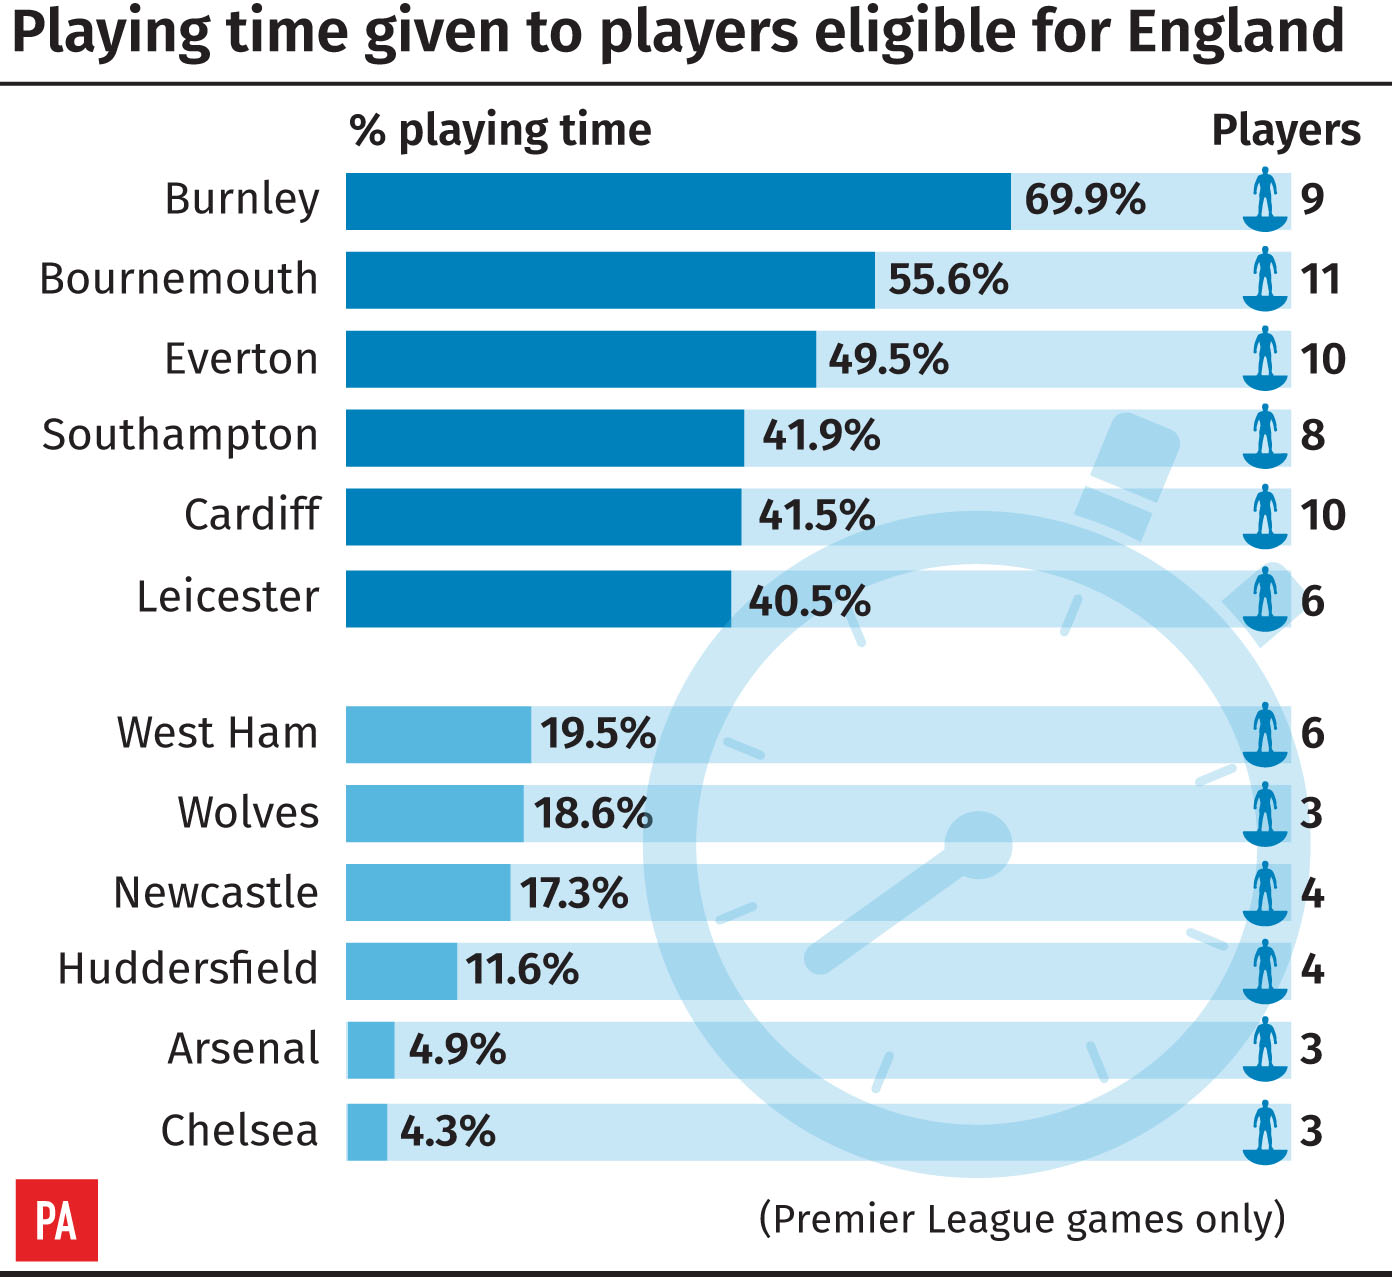 Premier League playing time for England-eligible players